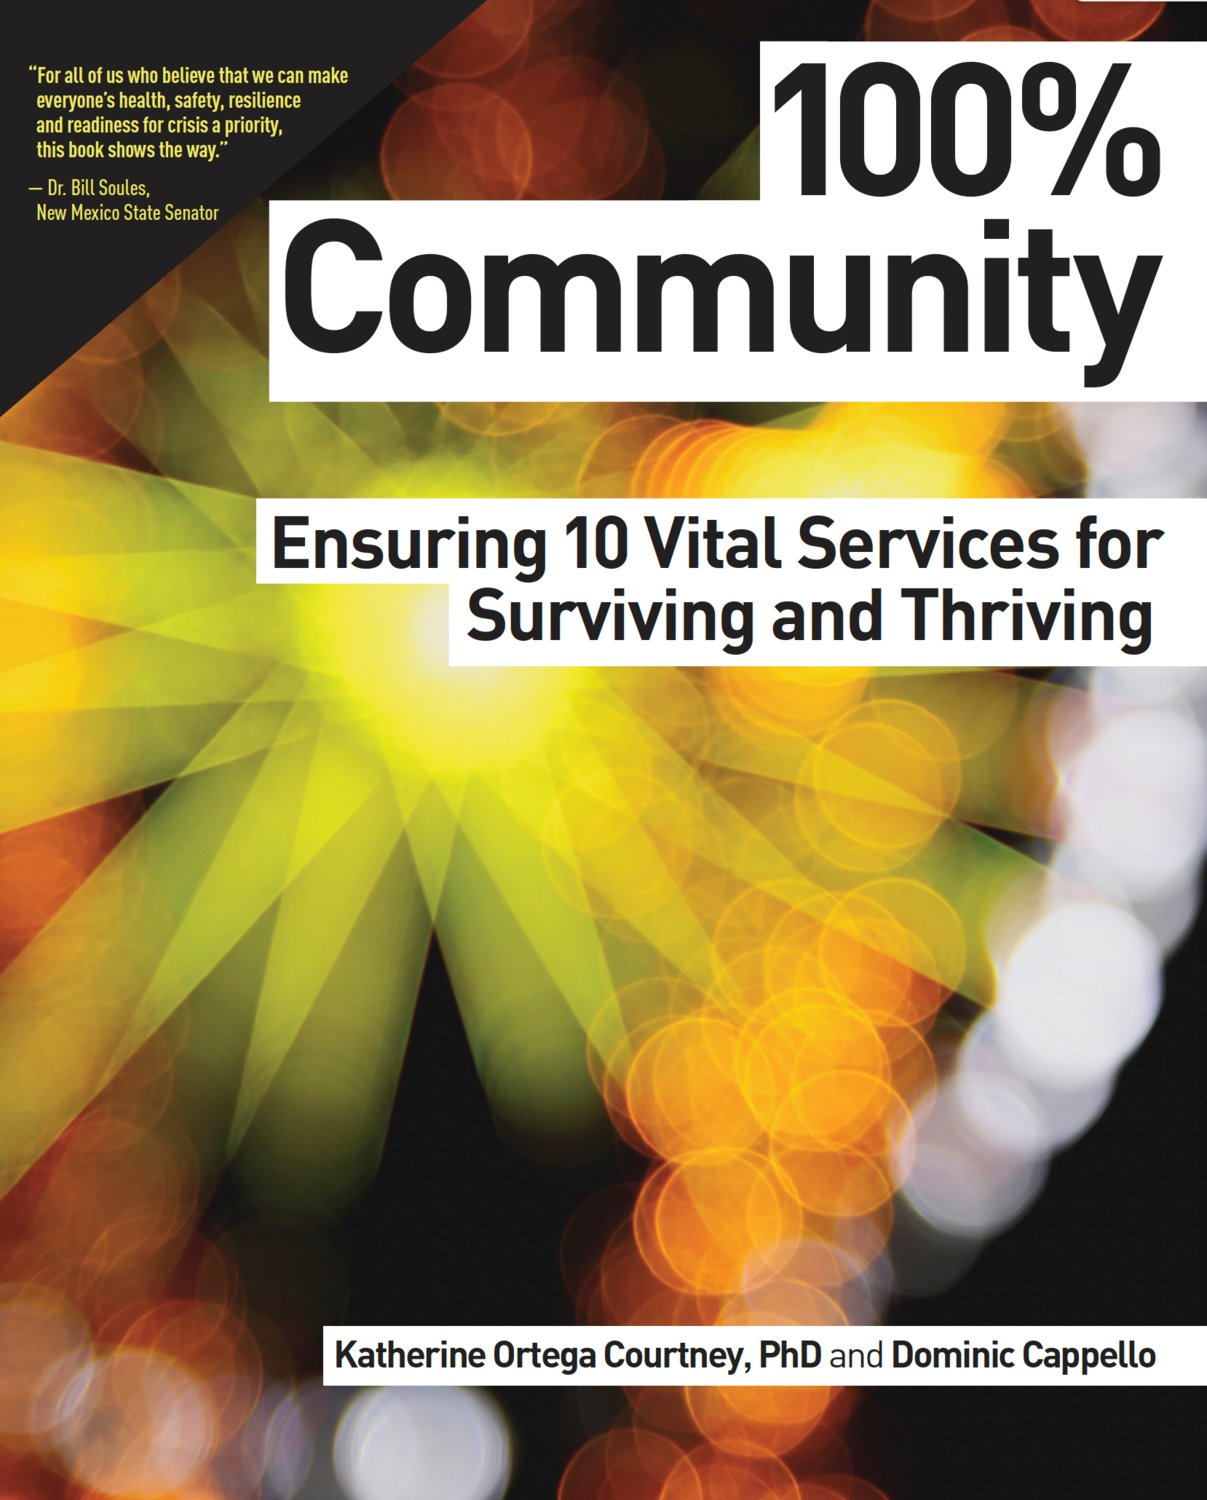 """100% Community: Ensuring Ten Vital Services for Surviving and Thriving,"" by Dominic Cappello